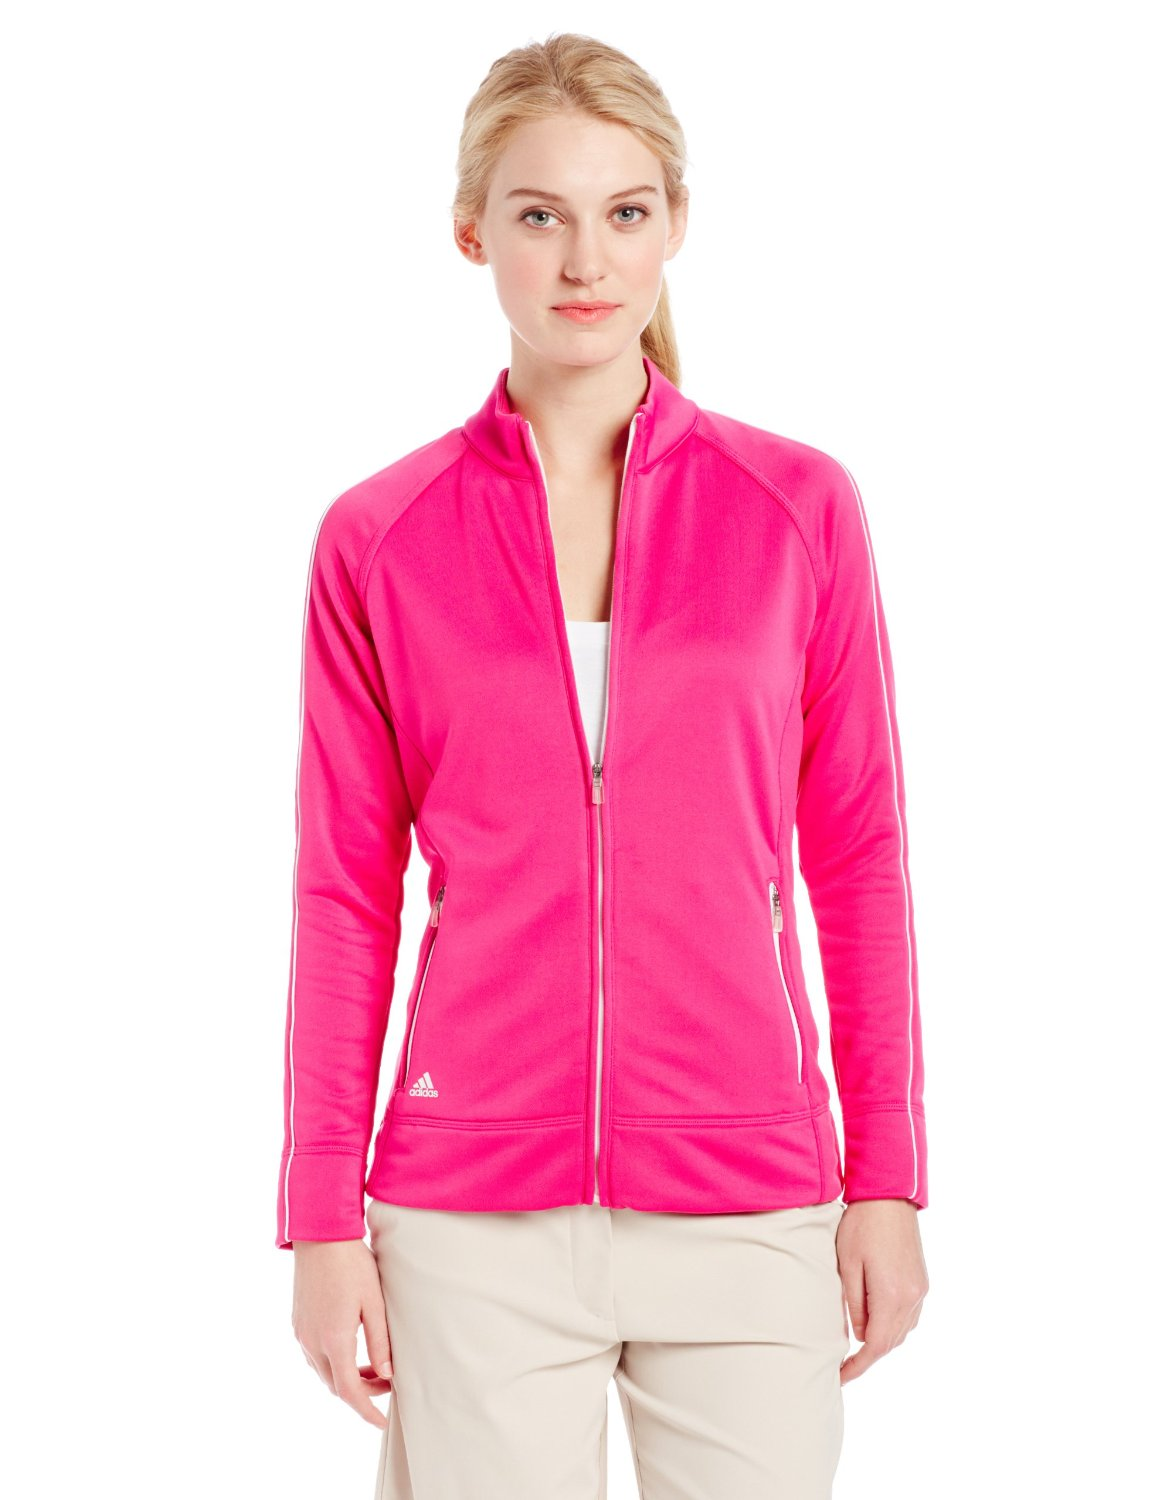 Womens Adidas 3-Stripe Piped Golf Jackets